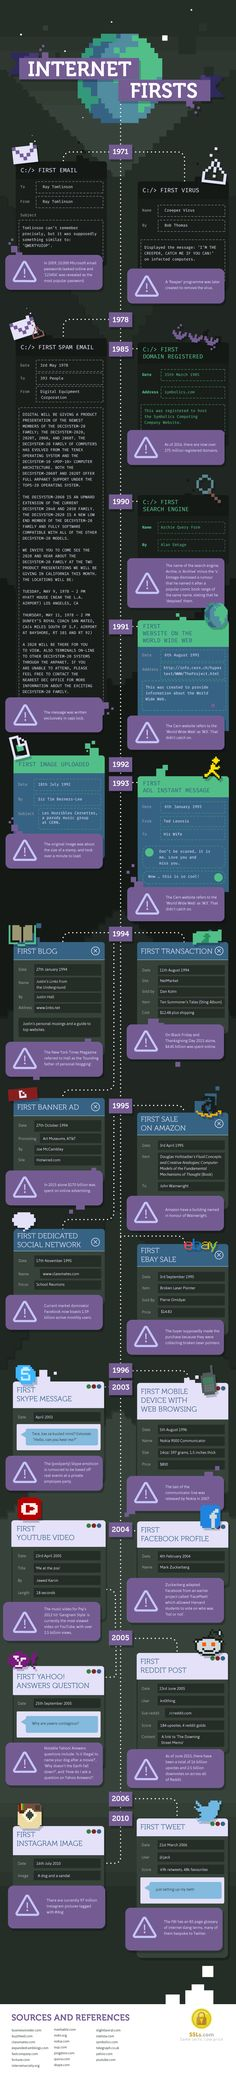 The History of the Web in a Single Infographic | Inc.com